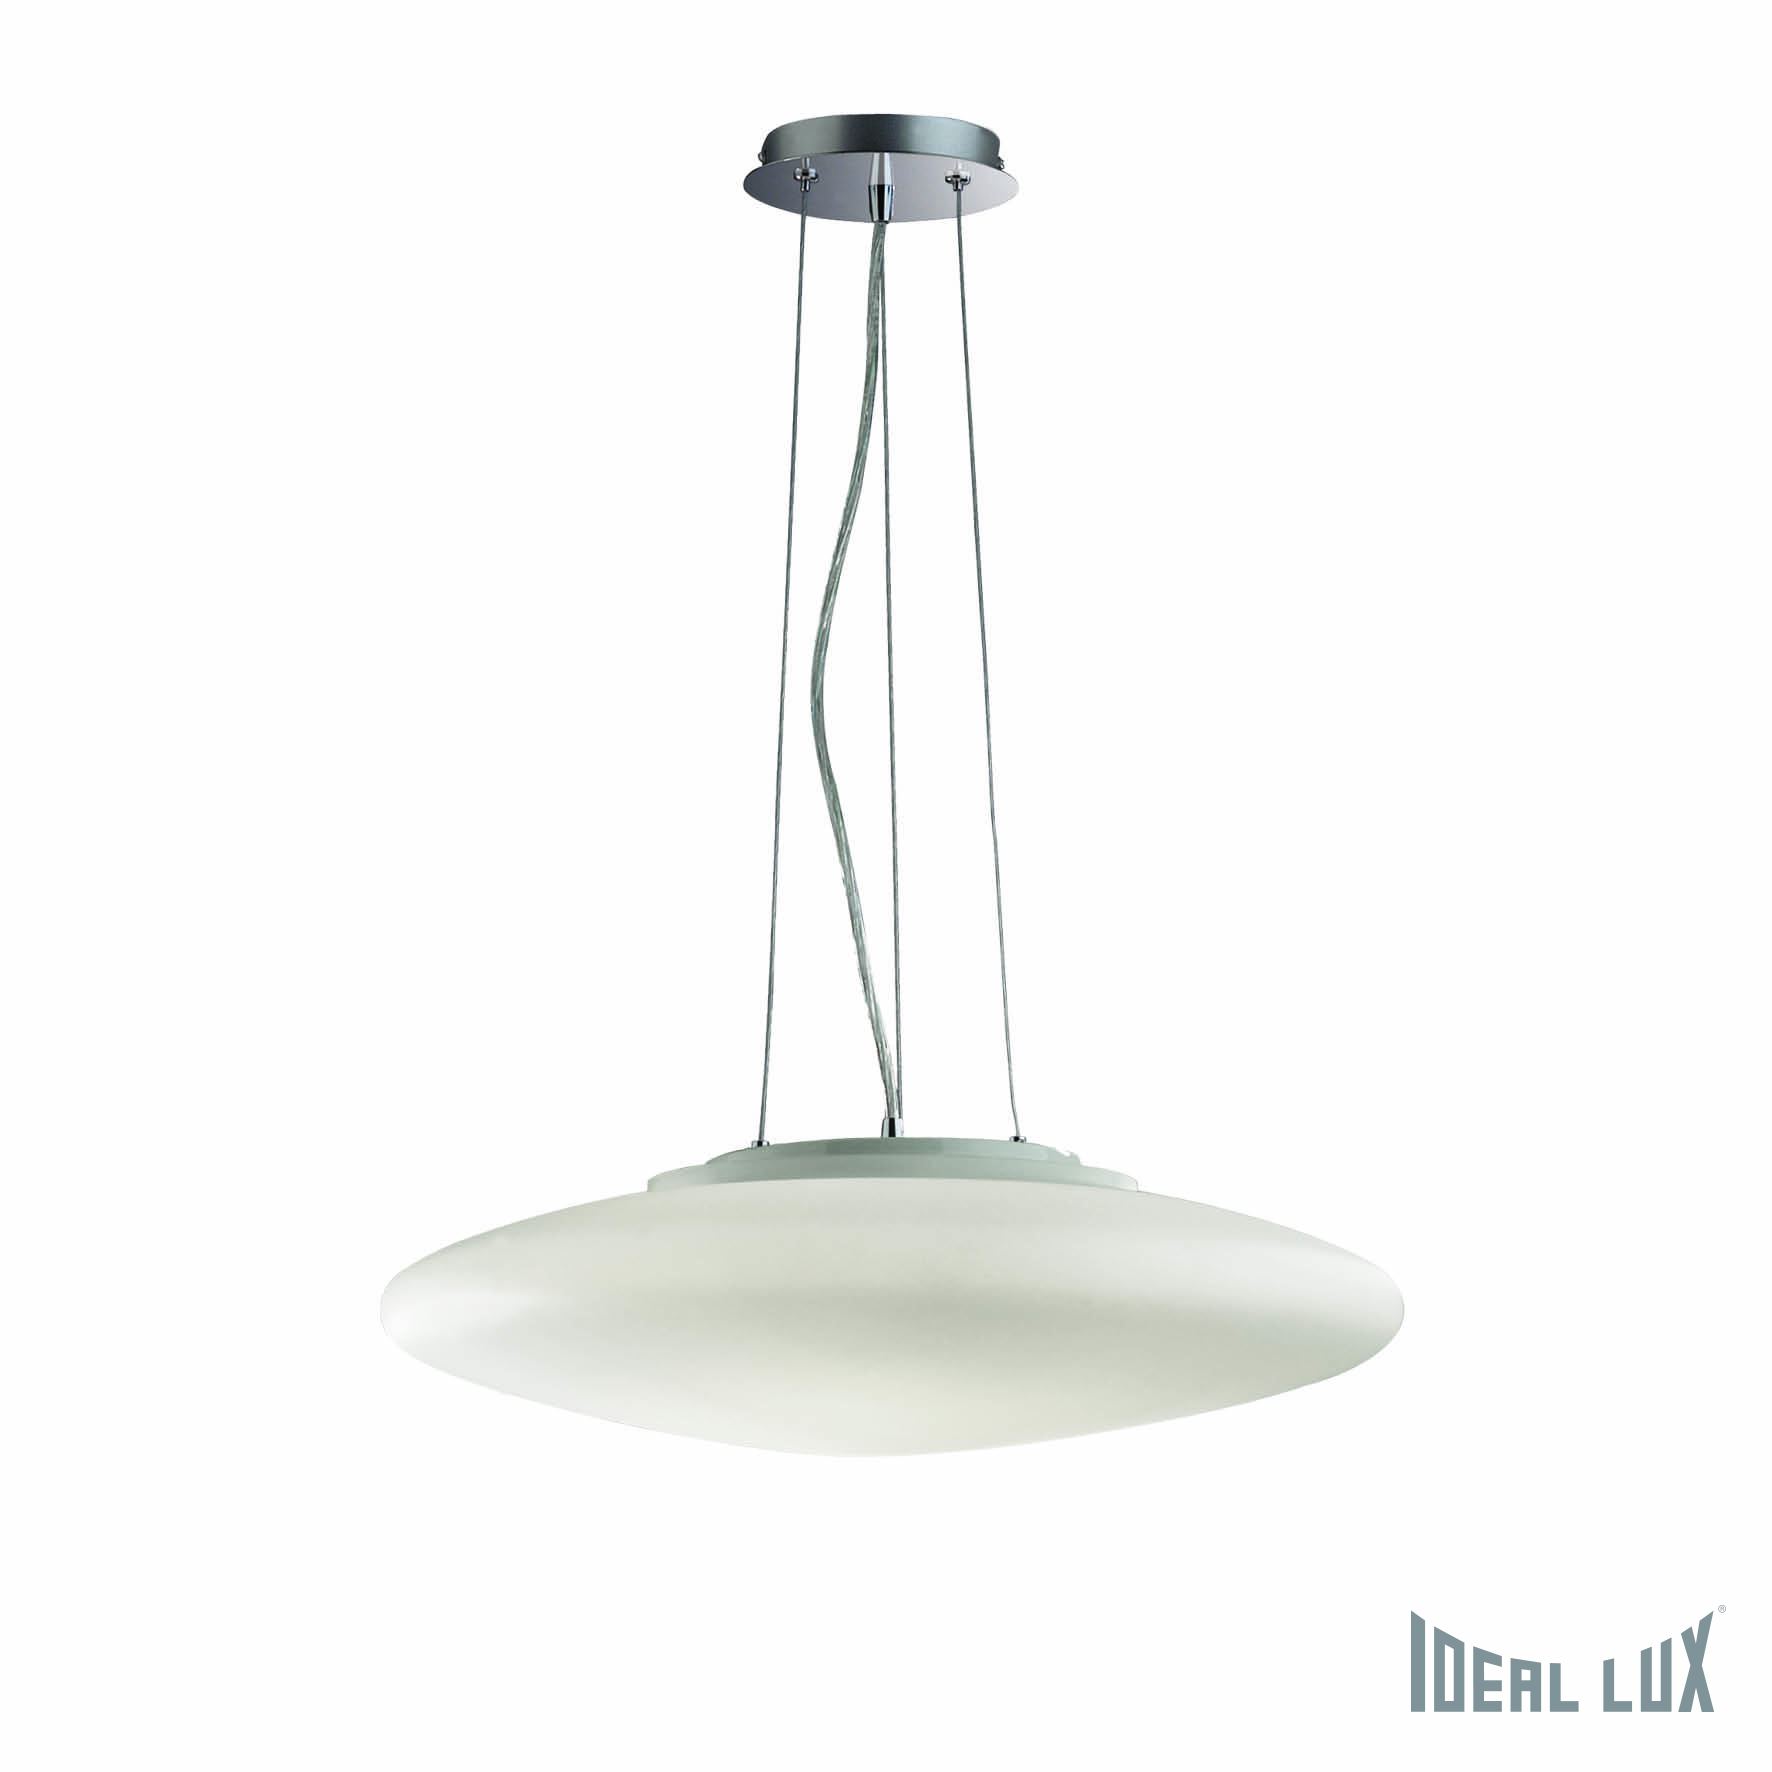 Светильник подвесной Ideal Lux Smarties SMARTIES BIANCO SP3 D50 ideal lux люстра ideal lux le roy sp3